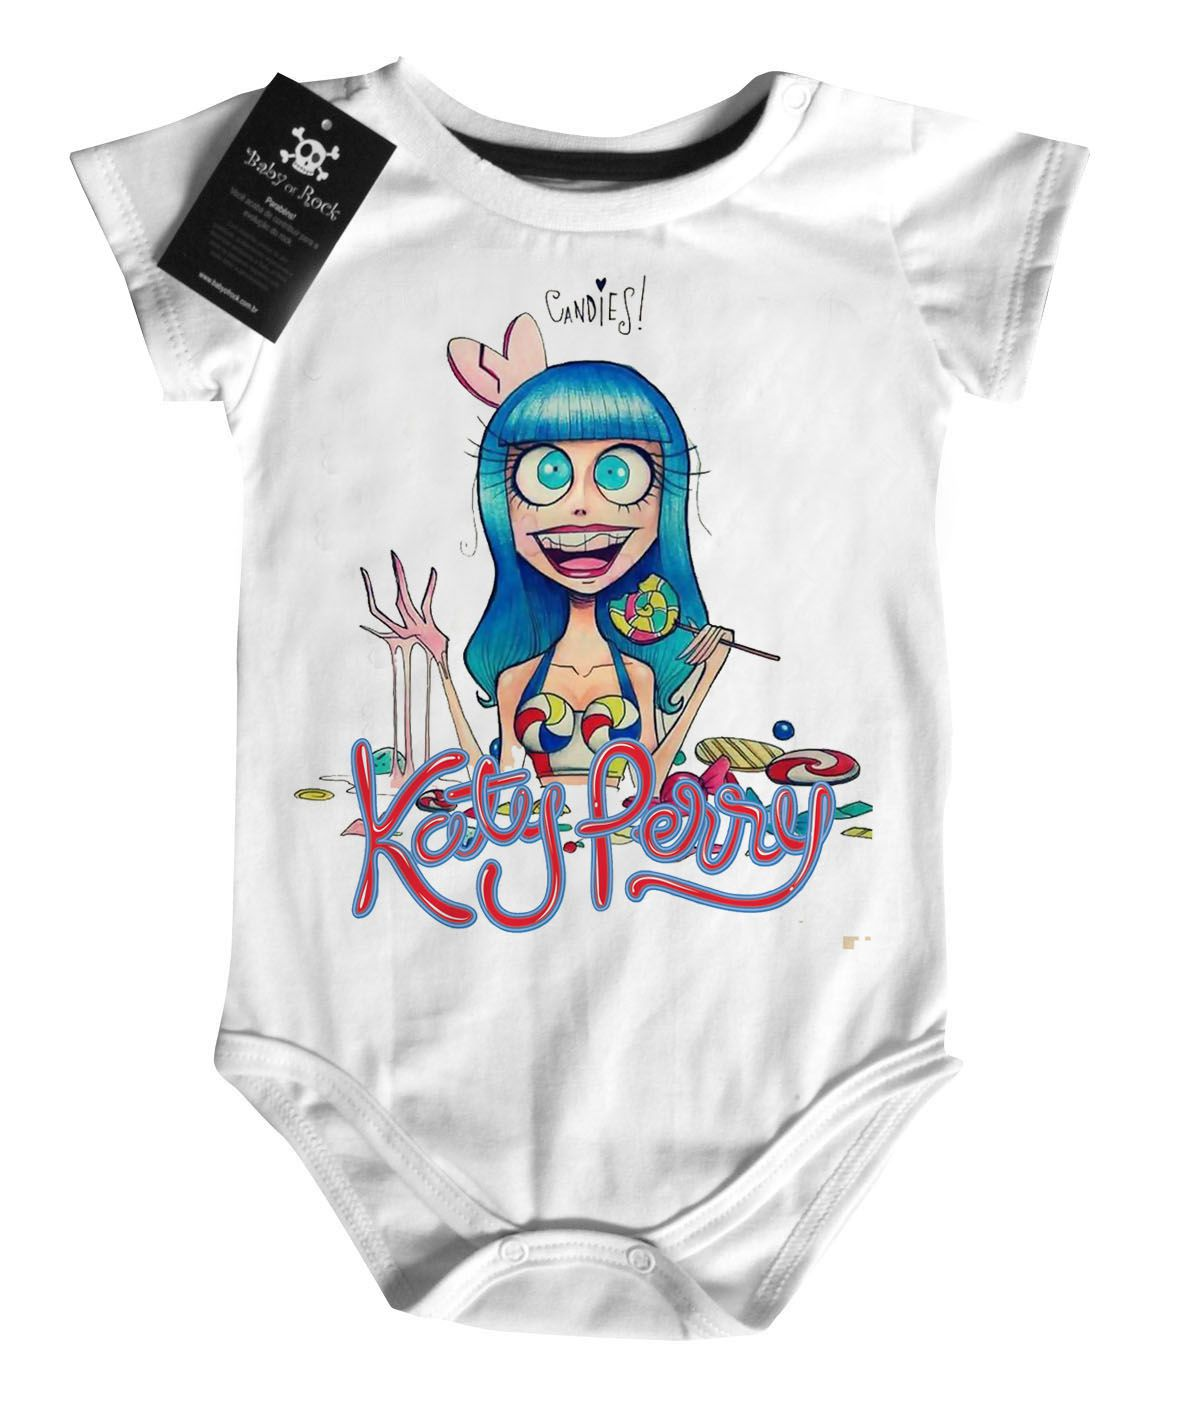 Body Bebe Kate Perry - Baby Monster S/A